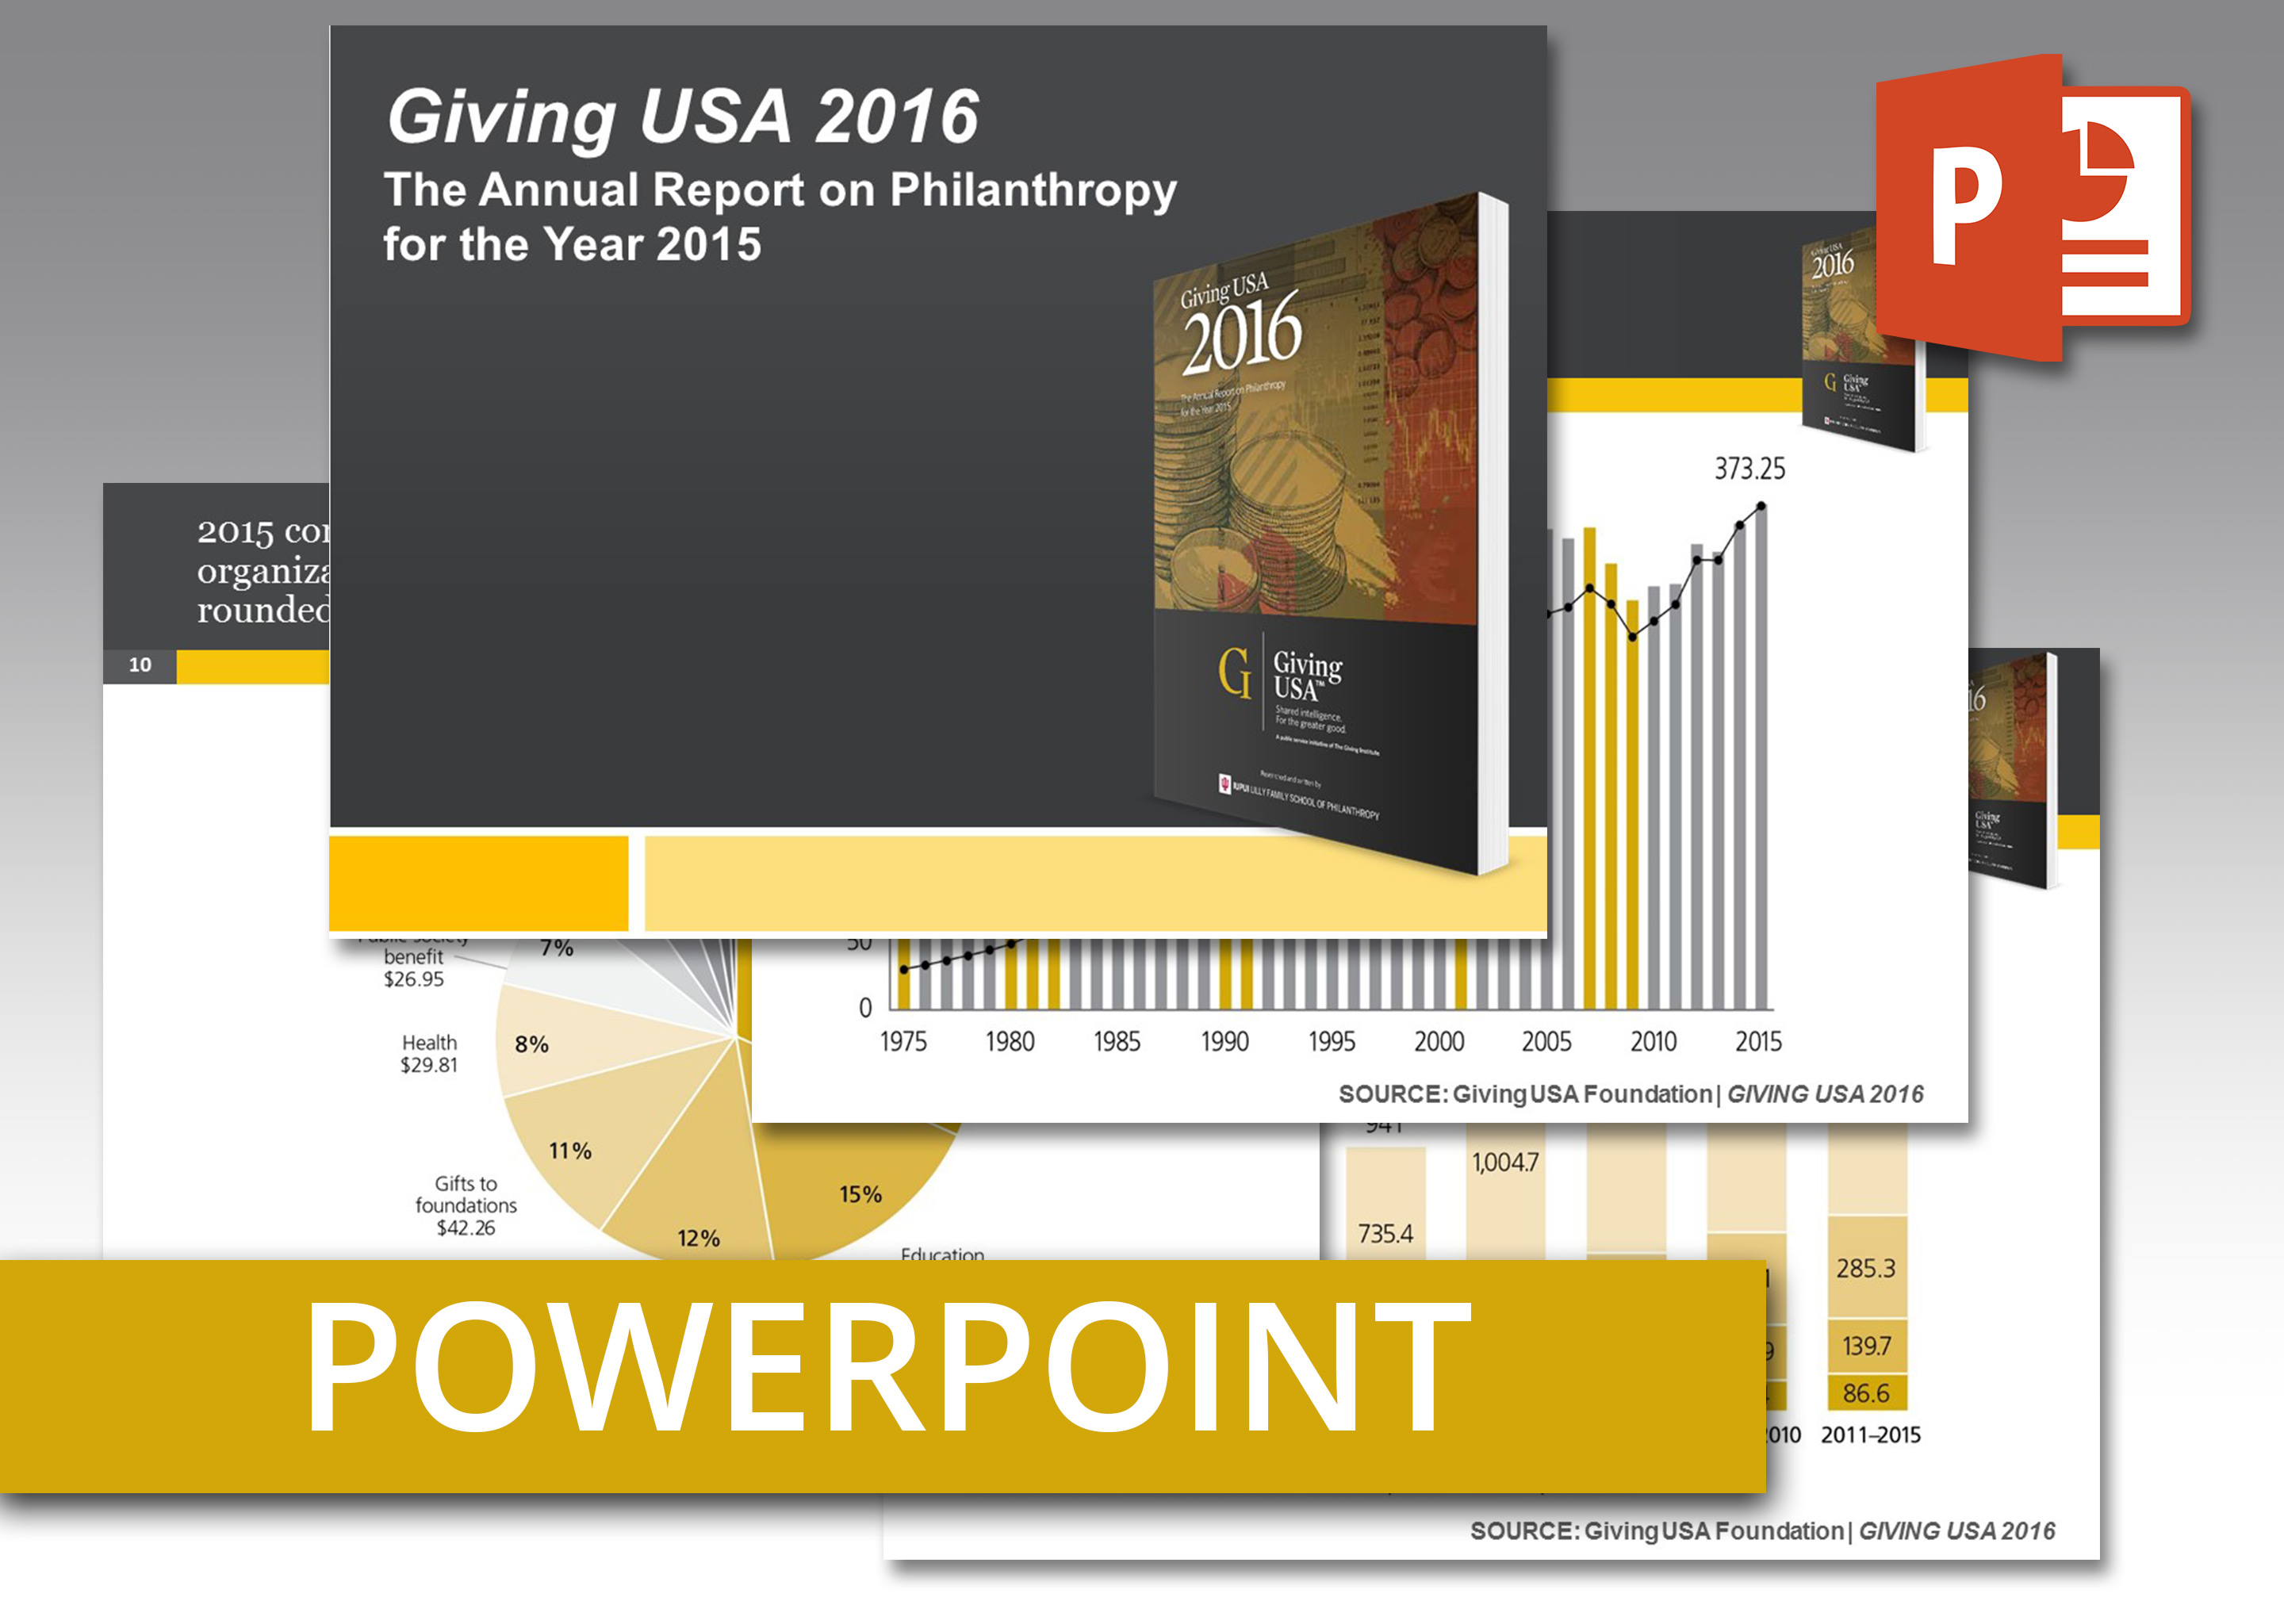 Usdgus  Winning Giving Usa  Powerpoint An Easytouse Presentation Of Report  With Interesting Giving Usa  Powerpoint An Easytouse Presentation Of Report Findings Including Talking Points With Charming Powerpoint Presentation Templates Free Download  Also Inverse Variation Powerpoint In Addition Easy Worship Powerpoint And Most Popular Powerpoint Templates As Well As Powerpoint Converter Online Additionally Powerpoint Cover Page Template From Givingusaorg With Usdgus  Interesting Giving Usa  Powerpoint An Easytouse Presentation Of Report  With Charming Giving Usa  Powerpoint An Easytouse Presentation Of Report Findings Including Talking Points And Winning Powerpoint Presentation Templates Free Download  Also Inverse Variation Powerpoint In Addition Easy Worship Powerpoint From Givingusaorg